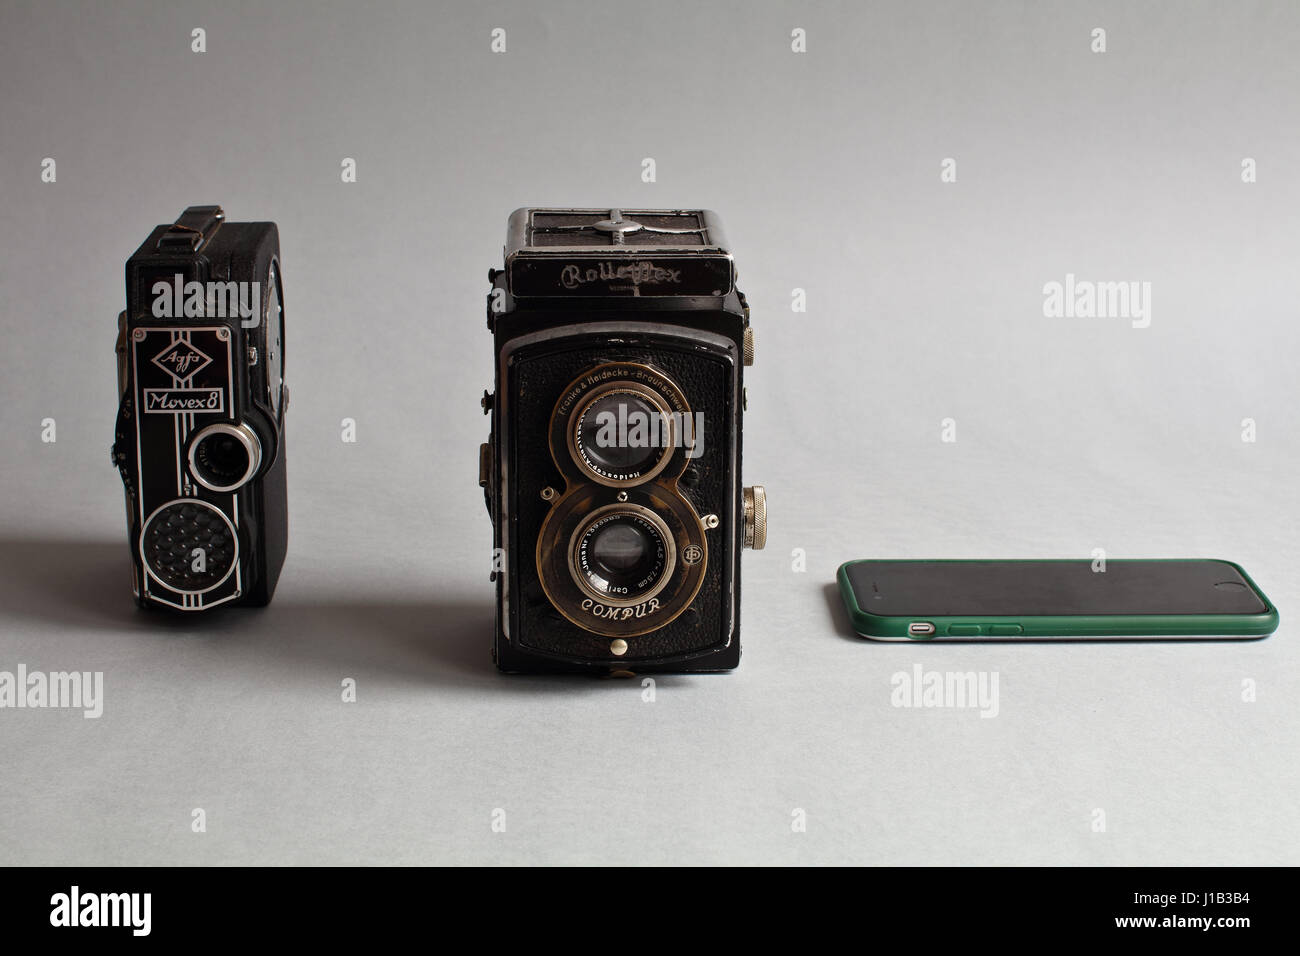 More than two in one. Smartphone is more than cameras. Antique analog camera. Optical and mechanical instruments - Stock Image